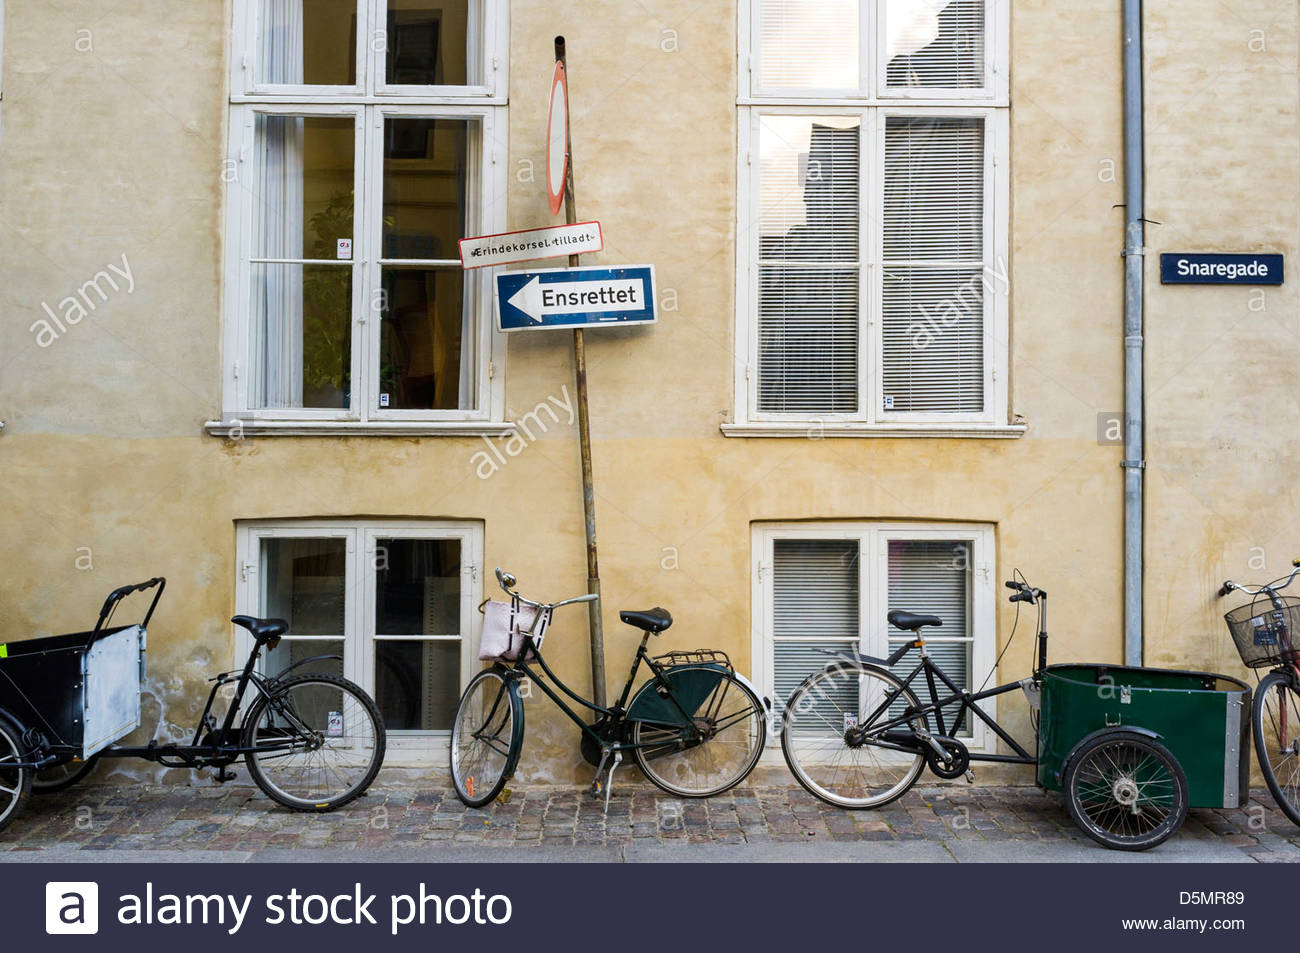 Bikes lined up against a wall on a sidewalk in central Copenhagen, Region Hovedstaden, Denmark - Stock Image